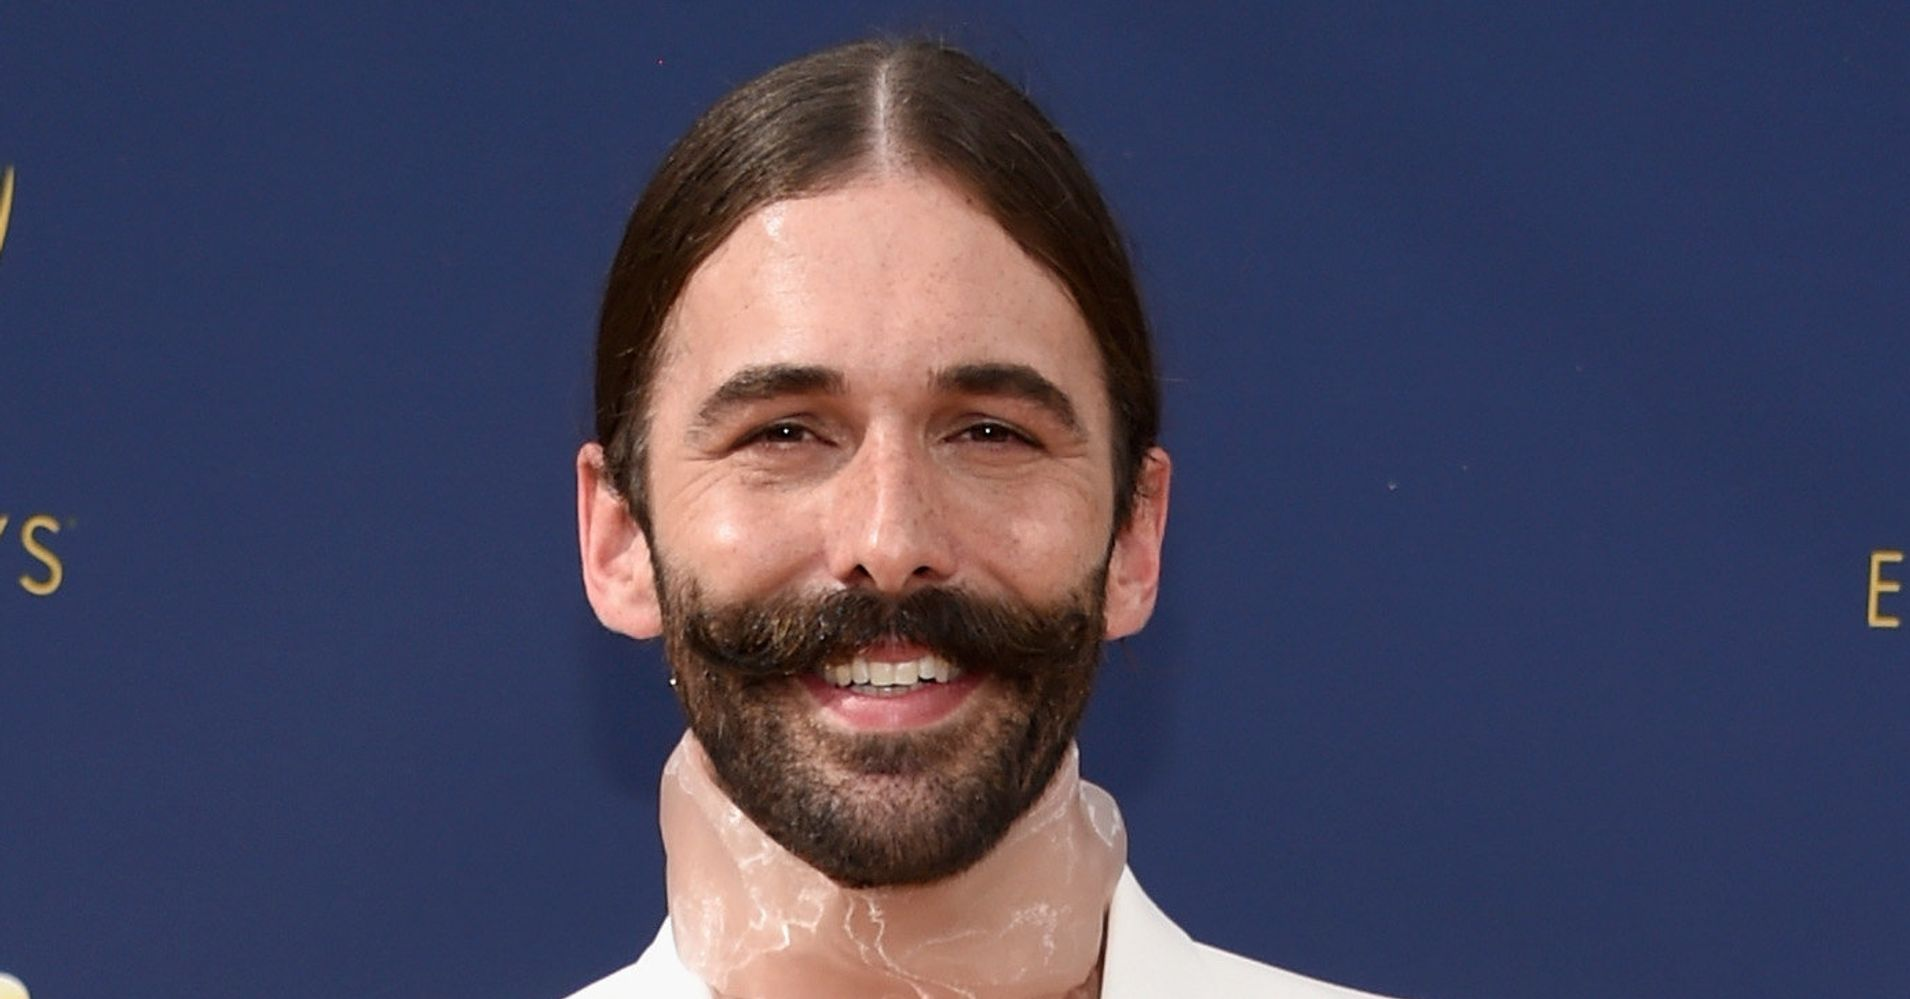 Jonathan Van Ness Wore The Same Outfit For An Entire Year On His Self-Love Journ...